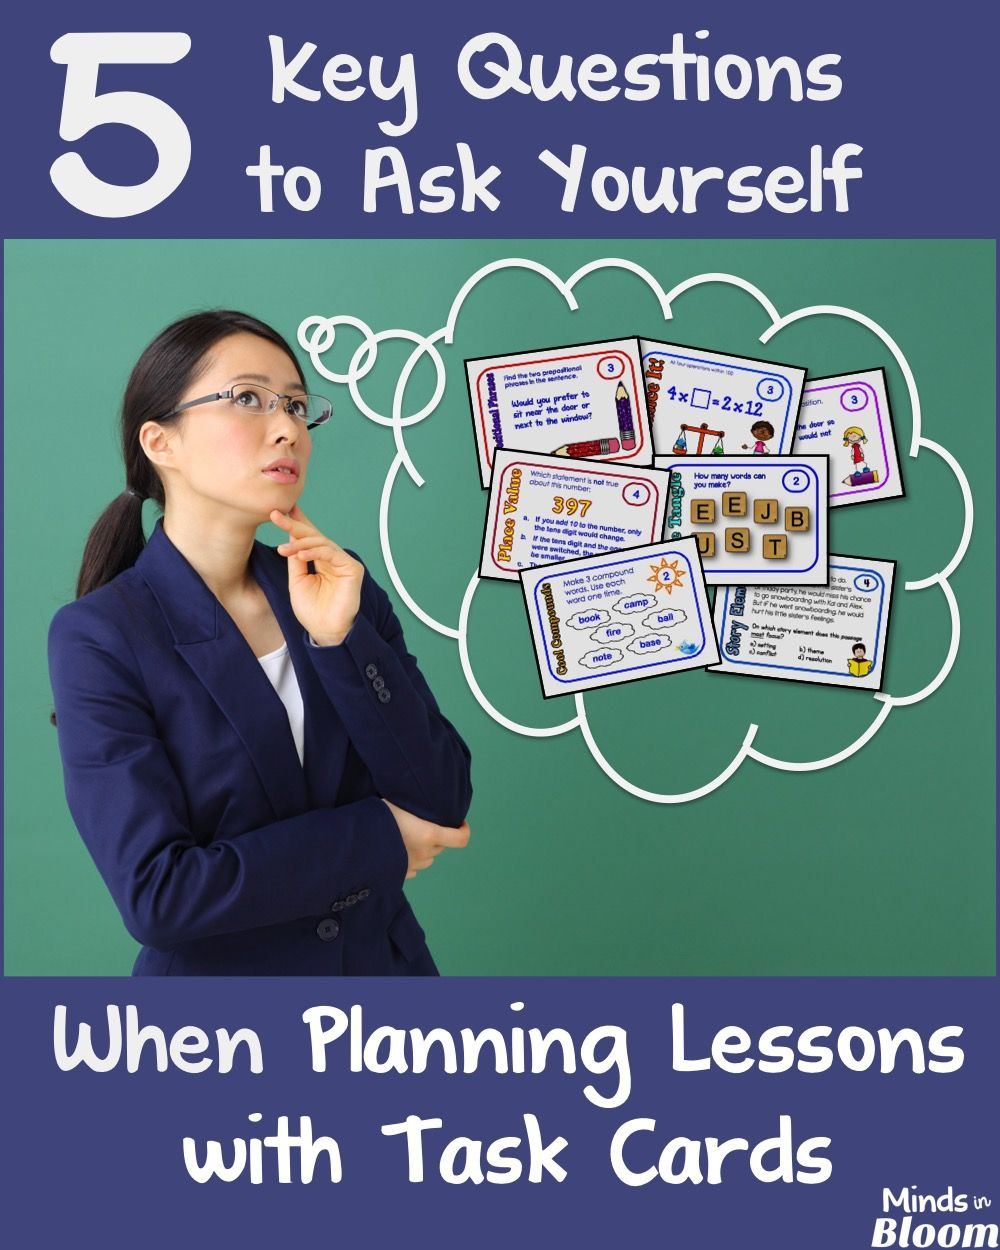 Task cards are an incredible instructional tool, but they're really taken to the next level when you're intentionally lesson planning with task cards. This post guides you through five questions to ask yourself when you're planning to incorporate task cards so that both you and your students get the most out of using them in class.